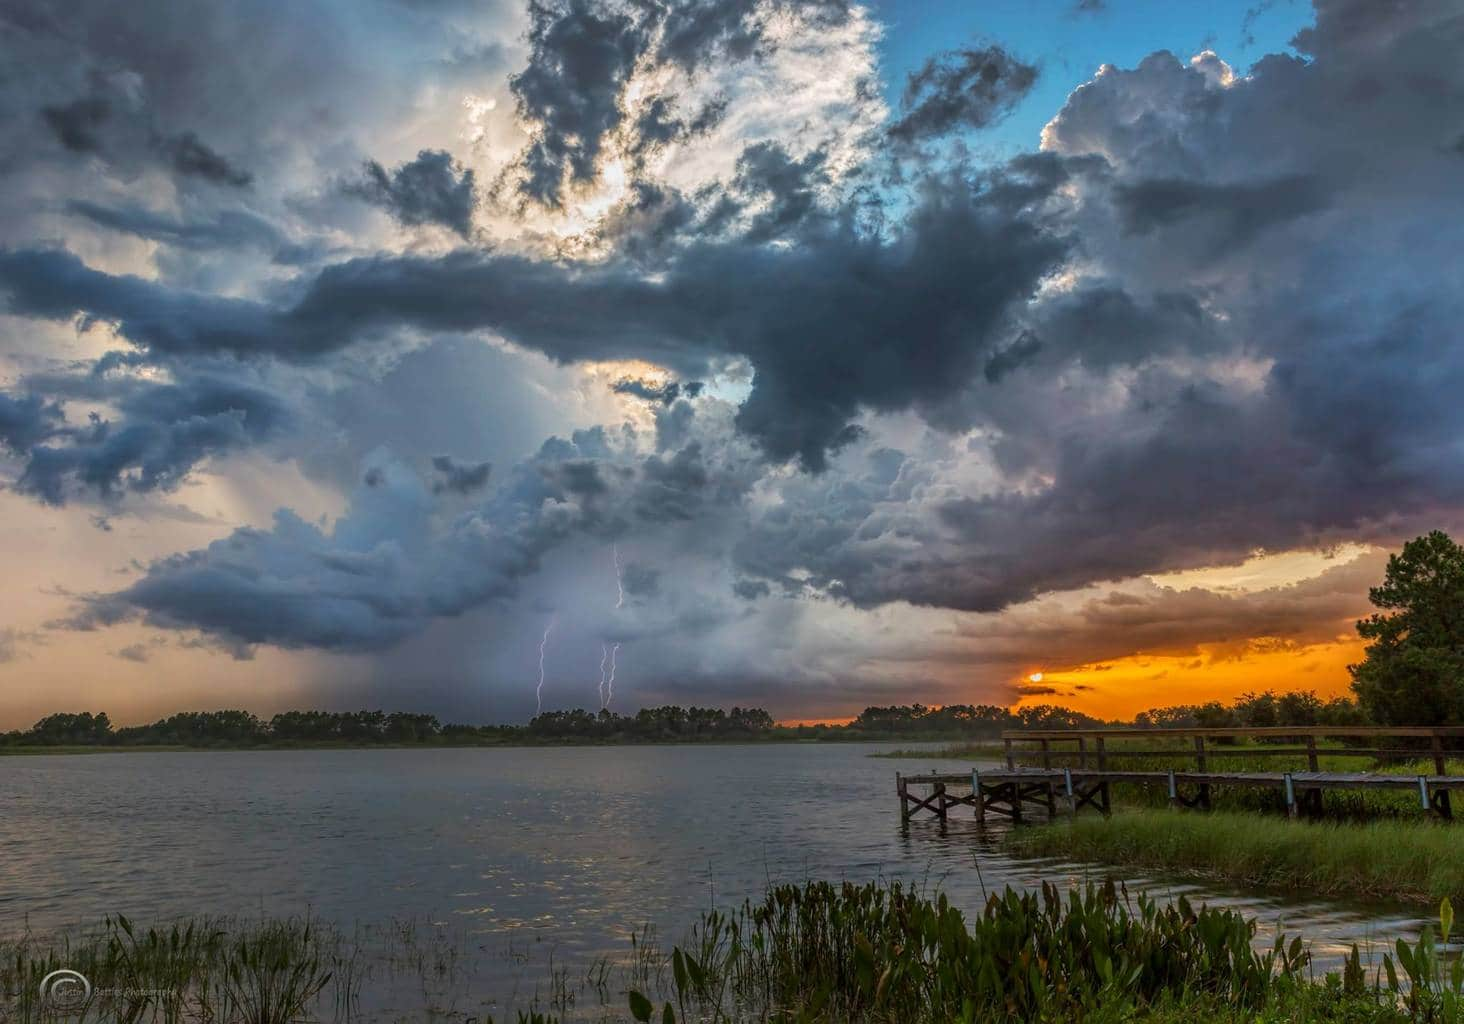 Some lightning right at sunset at Hardee Lakes Park in Bowling Green, Fl this evening